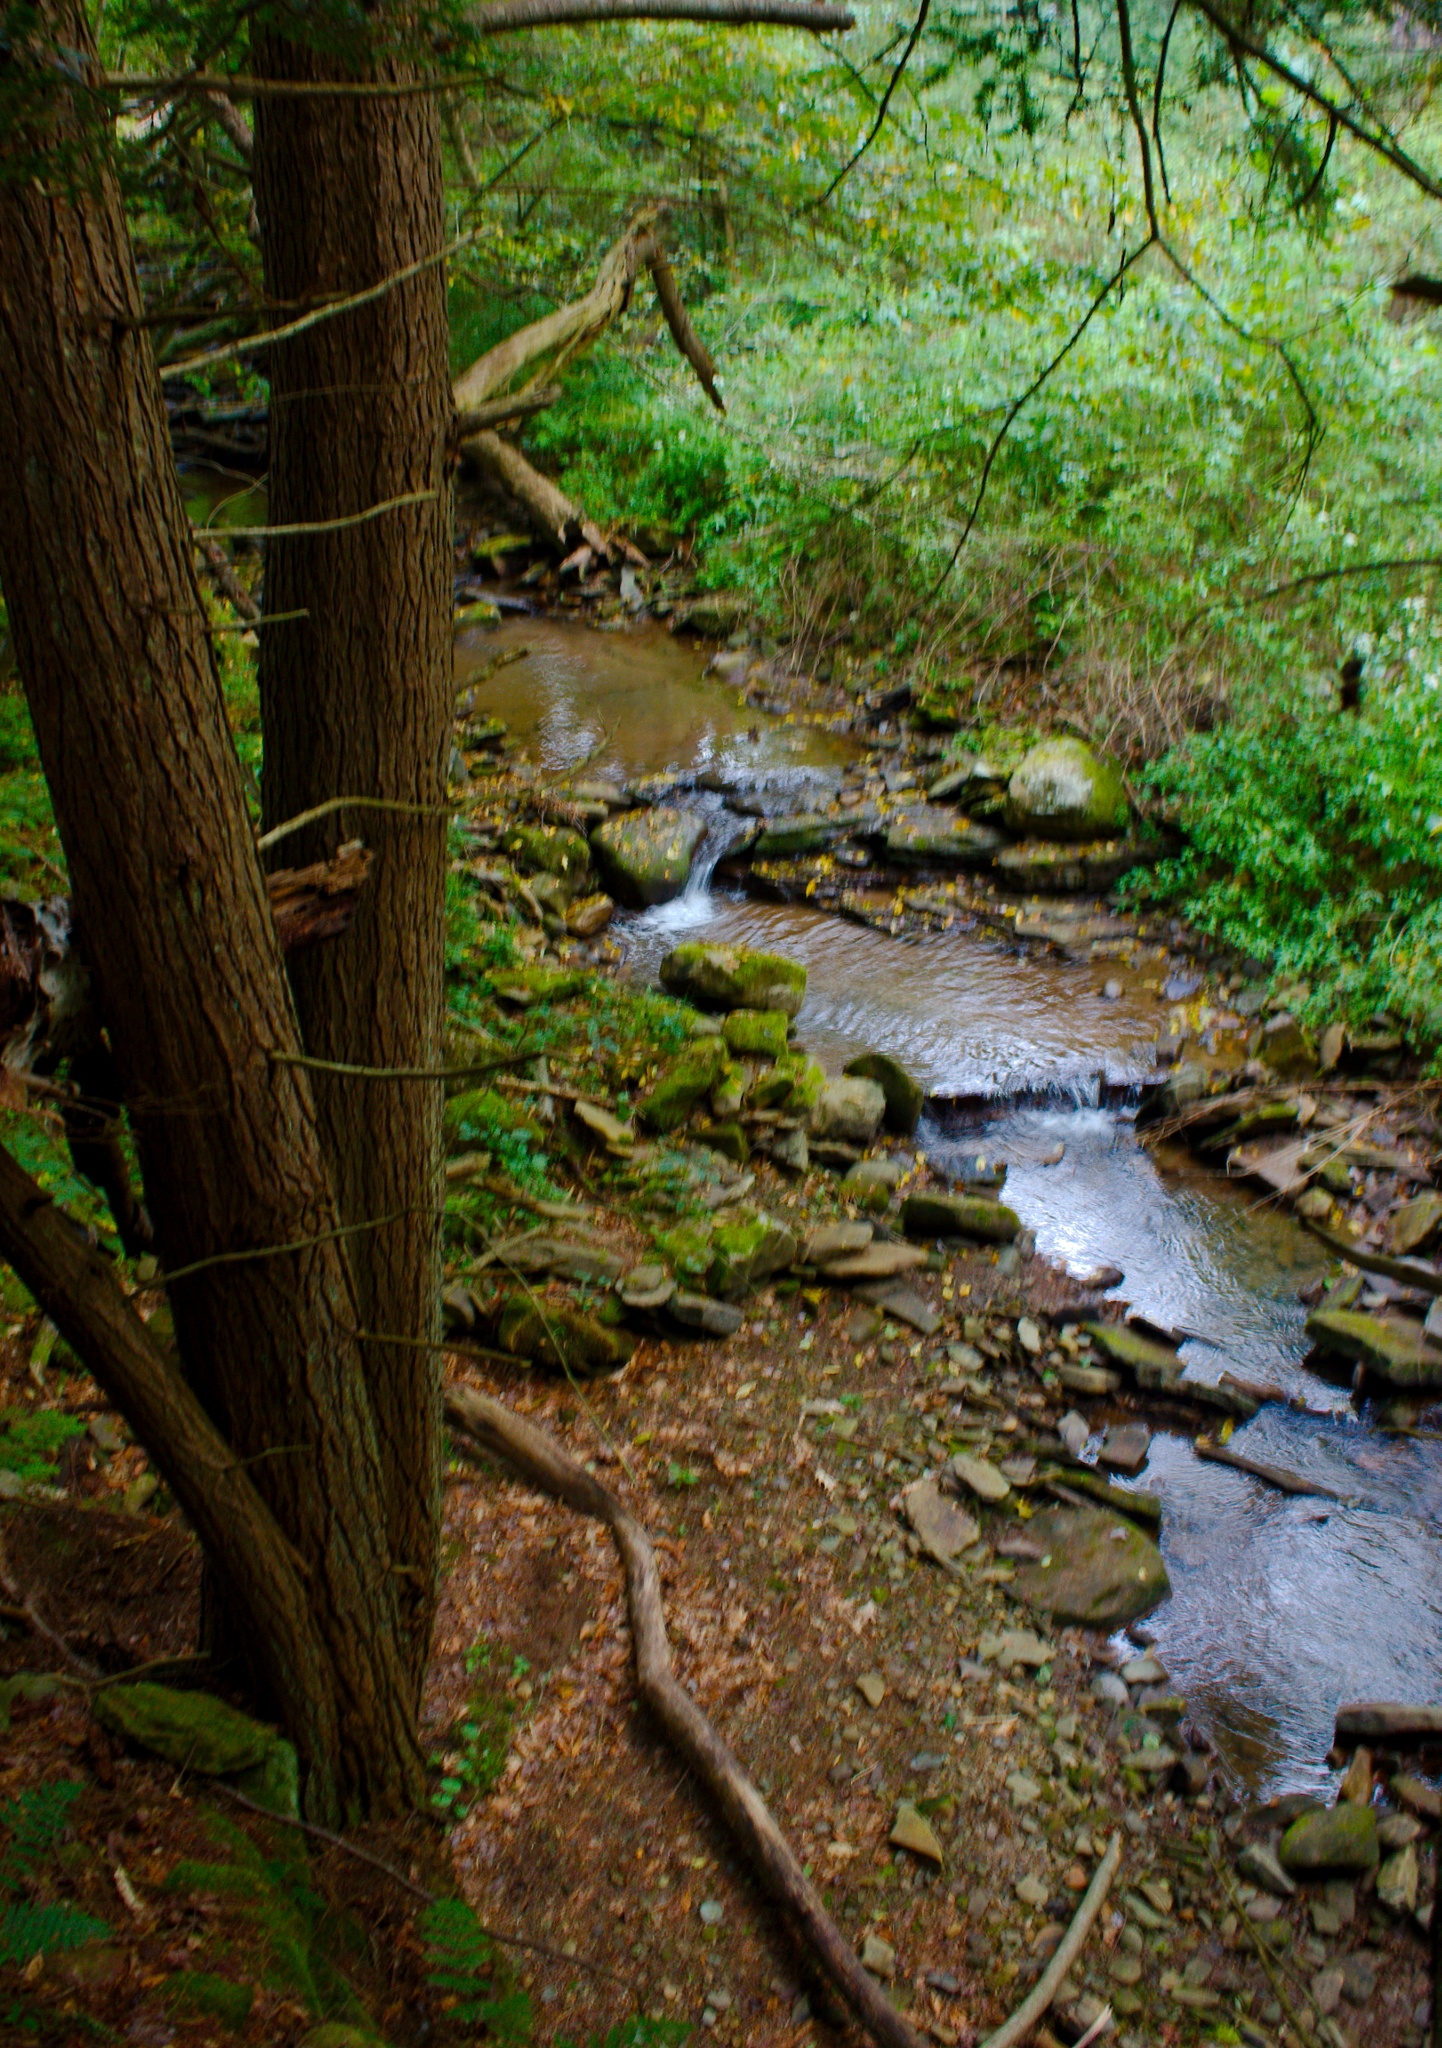 Trees by a Stream by Presnell Photography